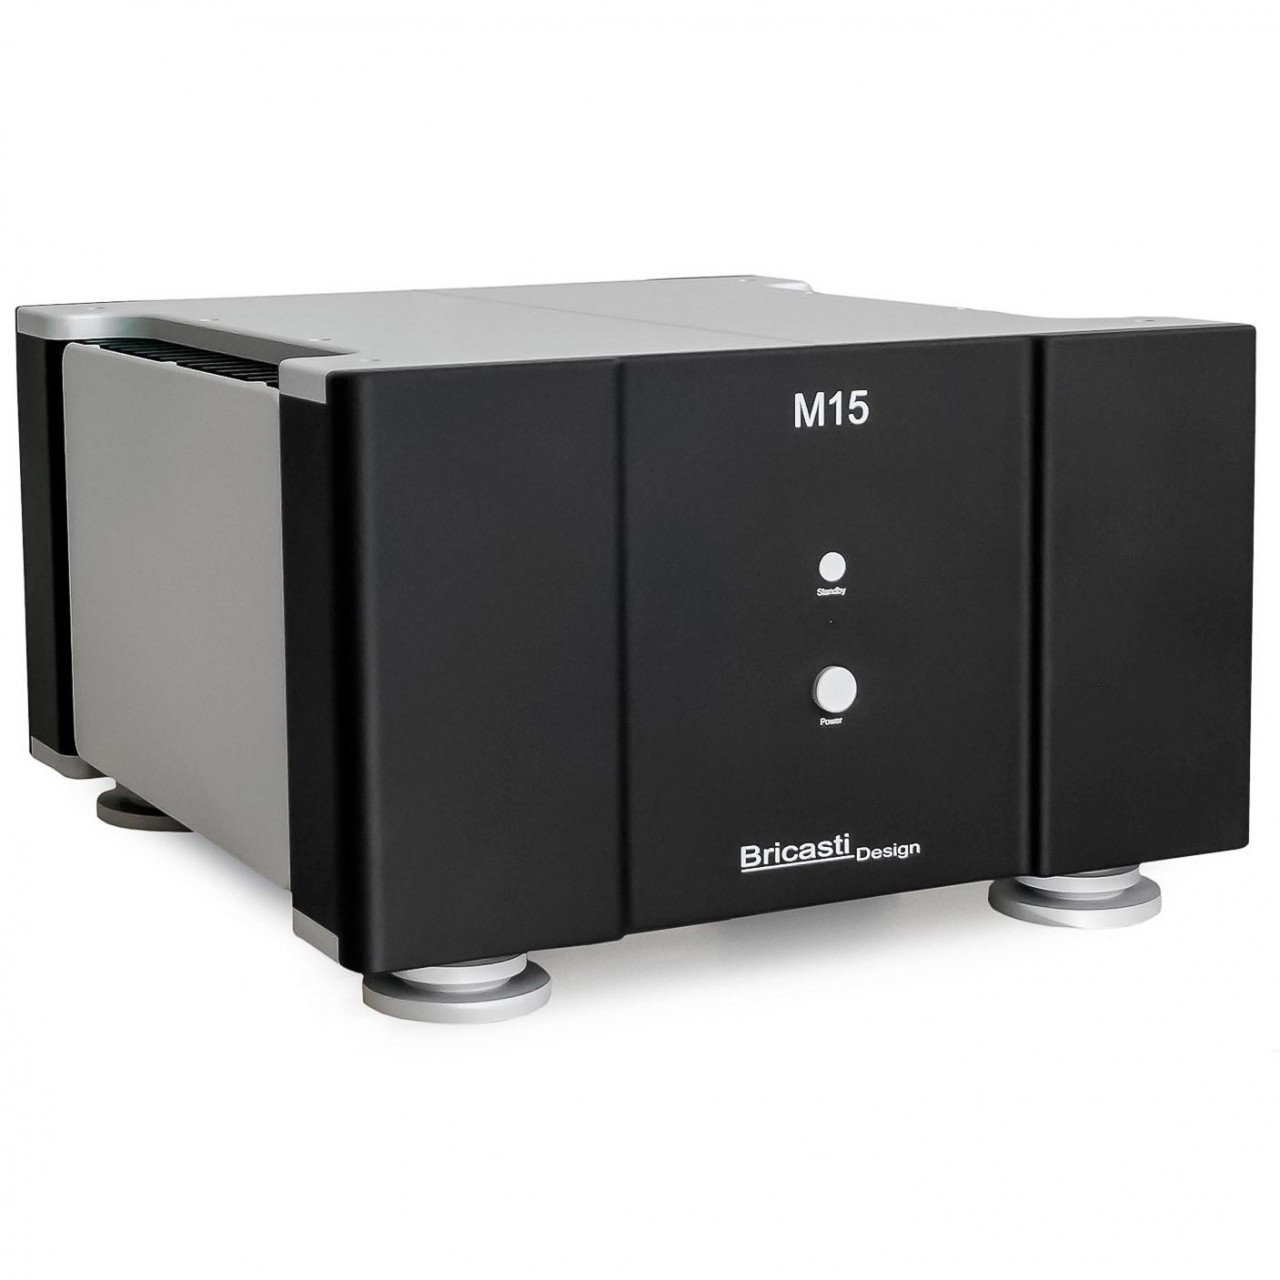 Bricasti M15 Stereo Power Amplifier